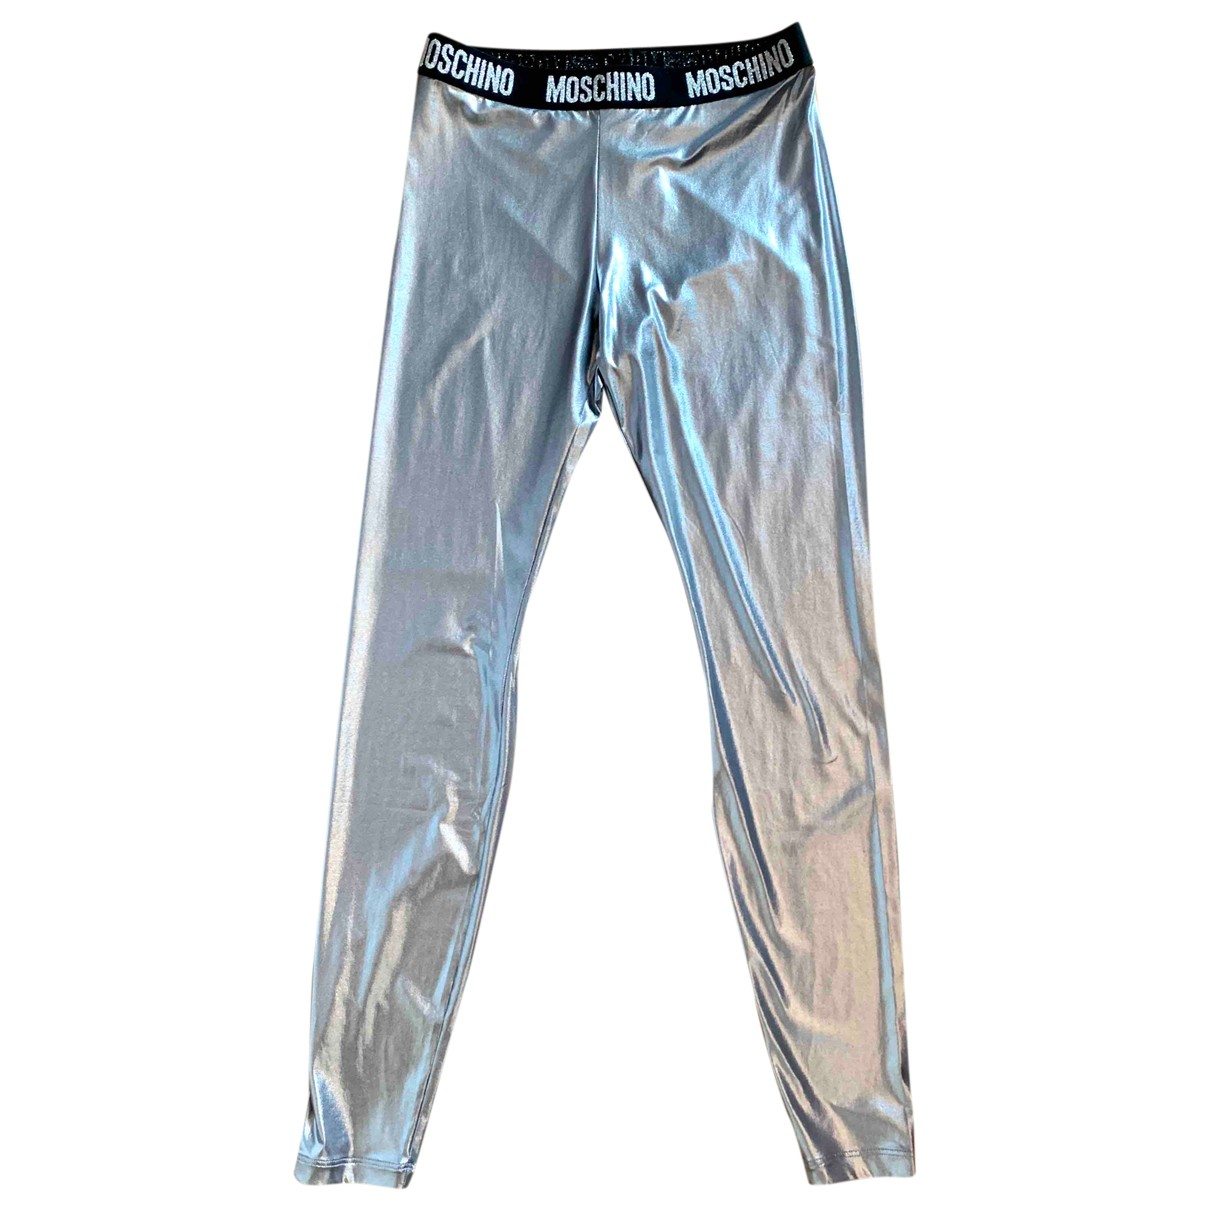 Moschino \N Silver Trousers for Women XS International